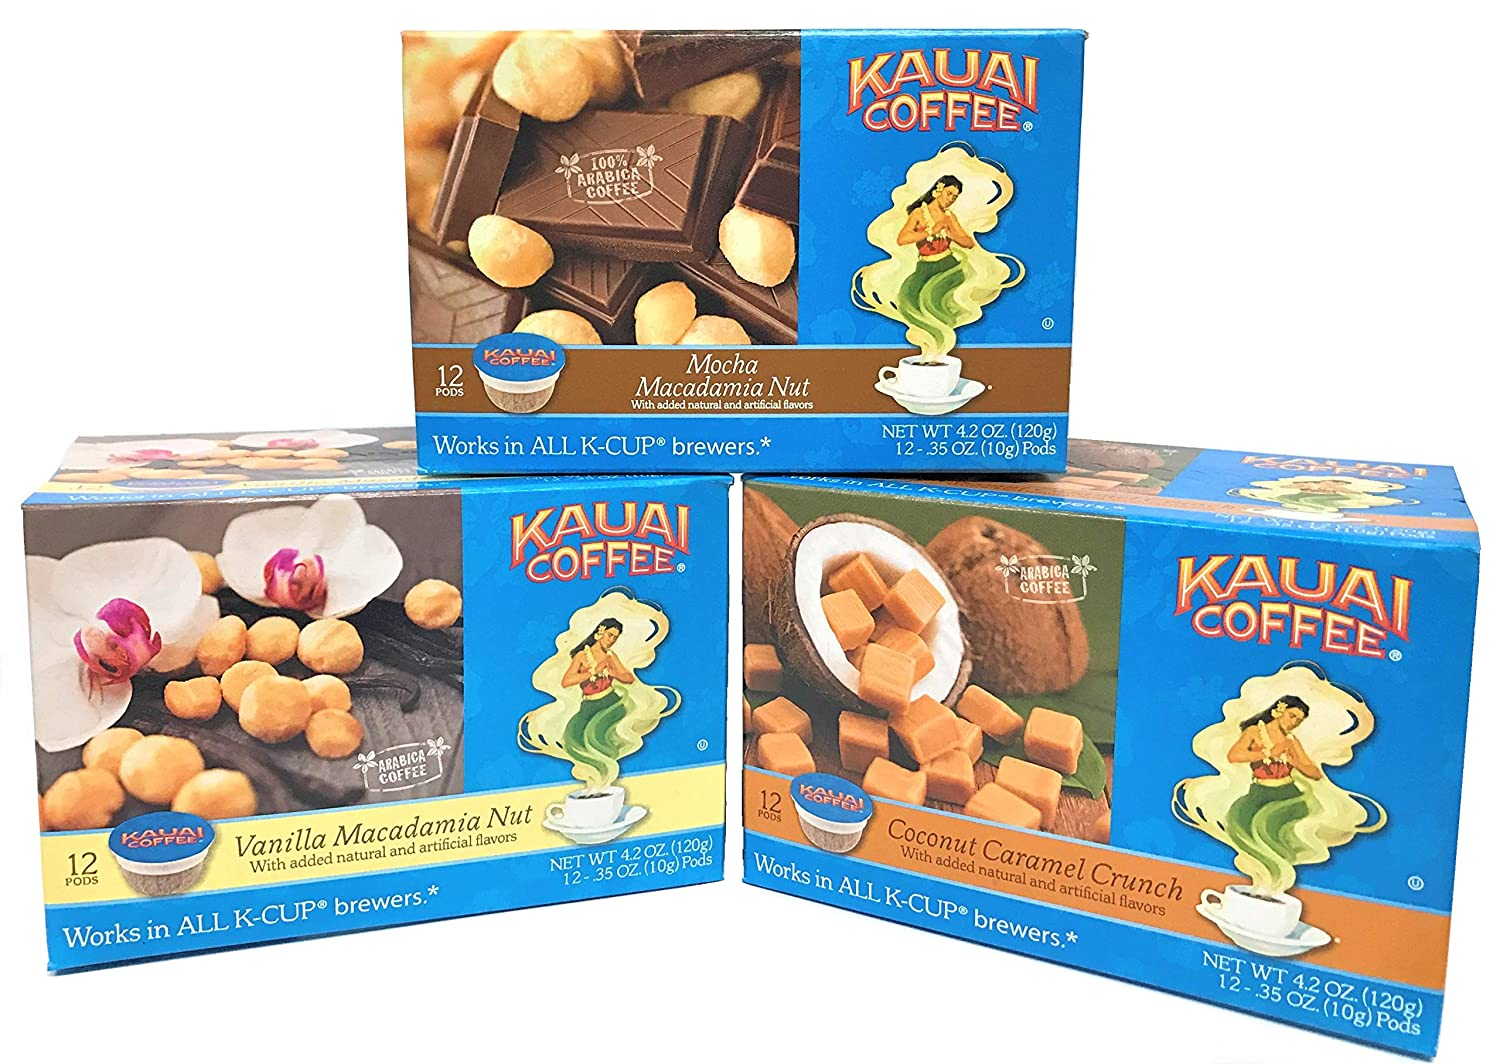 Kauai Coffee Variety Pack of 3, 12 Single Serve Pods, 1 - Coconut Caramel Crunch, 1 - Mocha Macadamia Nut and 1 - Vanilla Macadamia Nut, Keurig-Compatible Cups